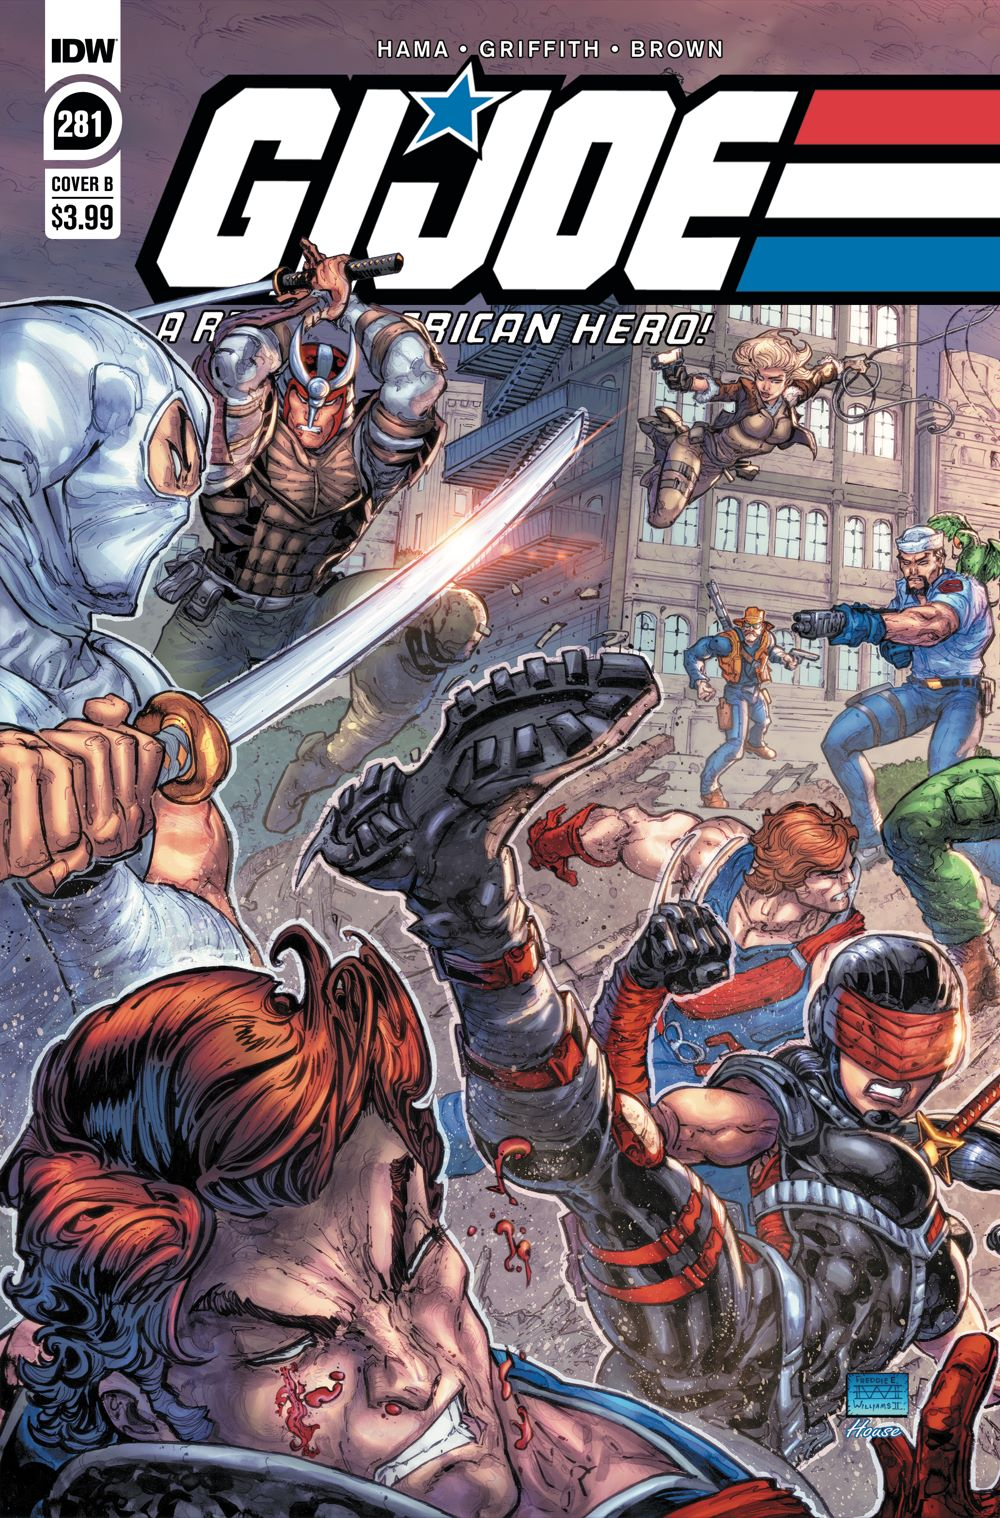 GIJoeRAH281-coverB ComicList: IDW Publishing New Releases for 05/12/2021